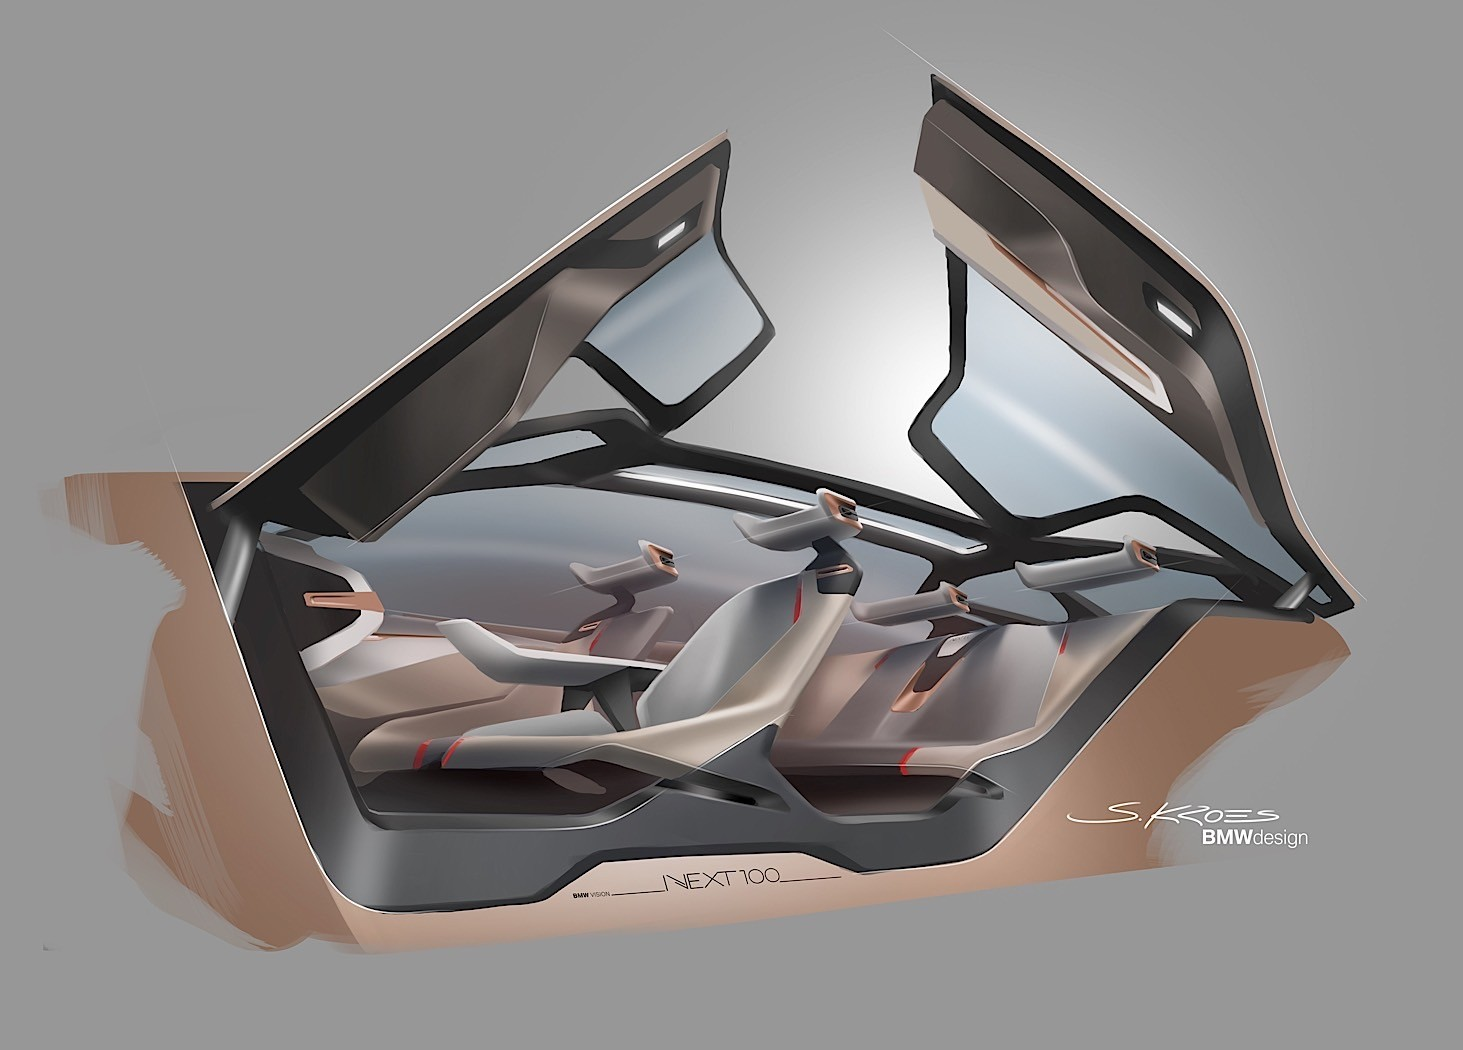 bmw vision next 100 futuristic moving wheel arches and dash in the flesh autoevolution. Black Bedroom Furniture Sets. Home Design Ideas